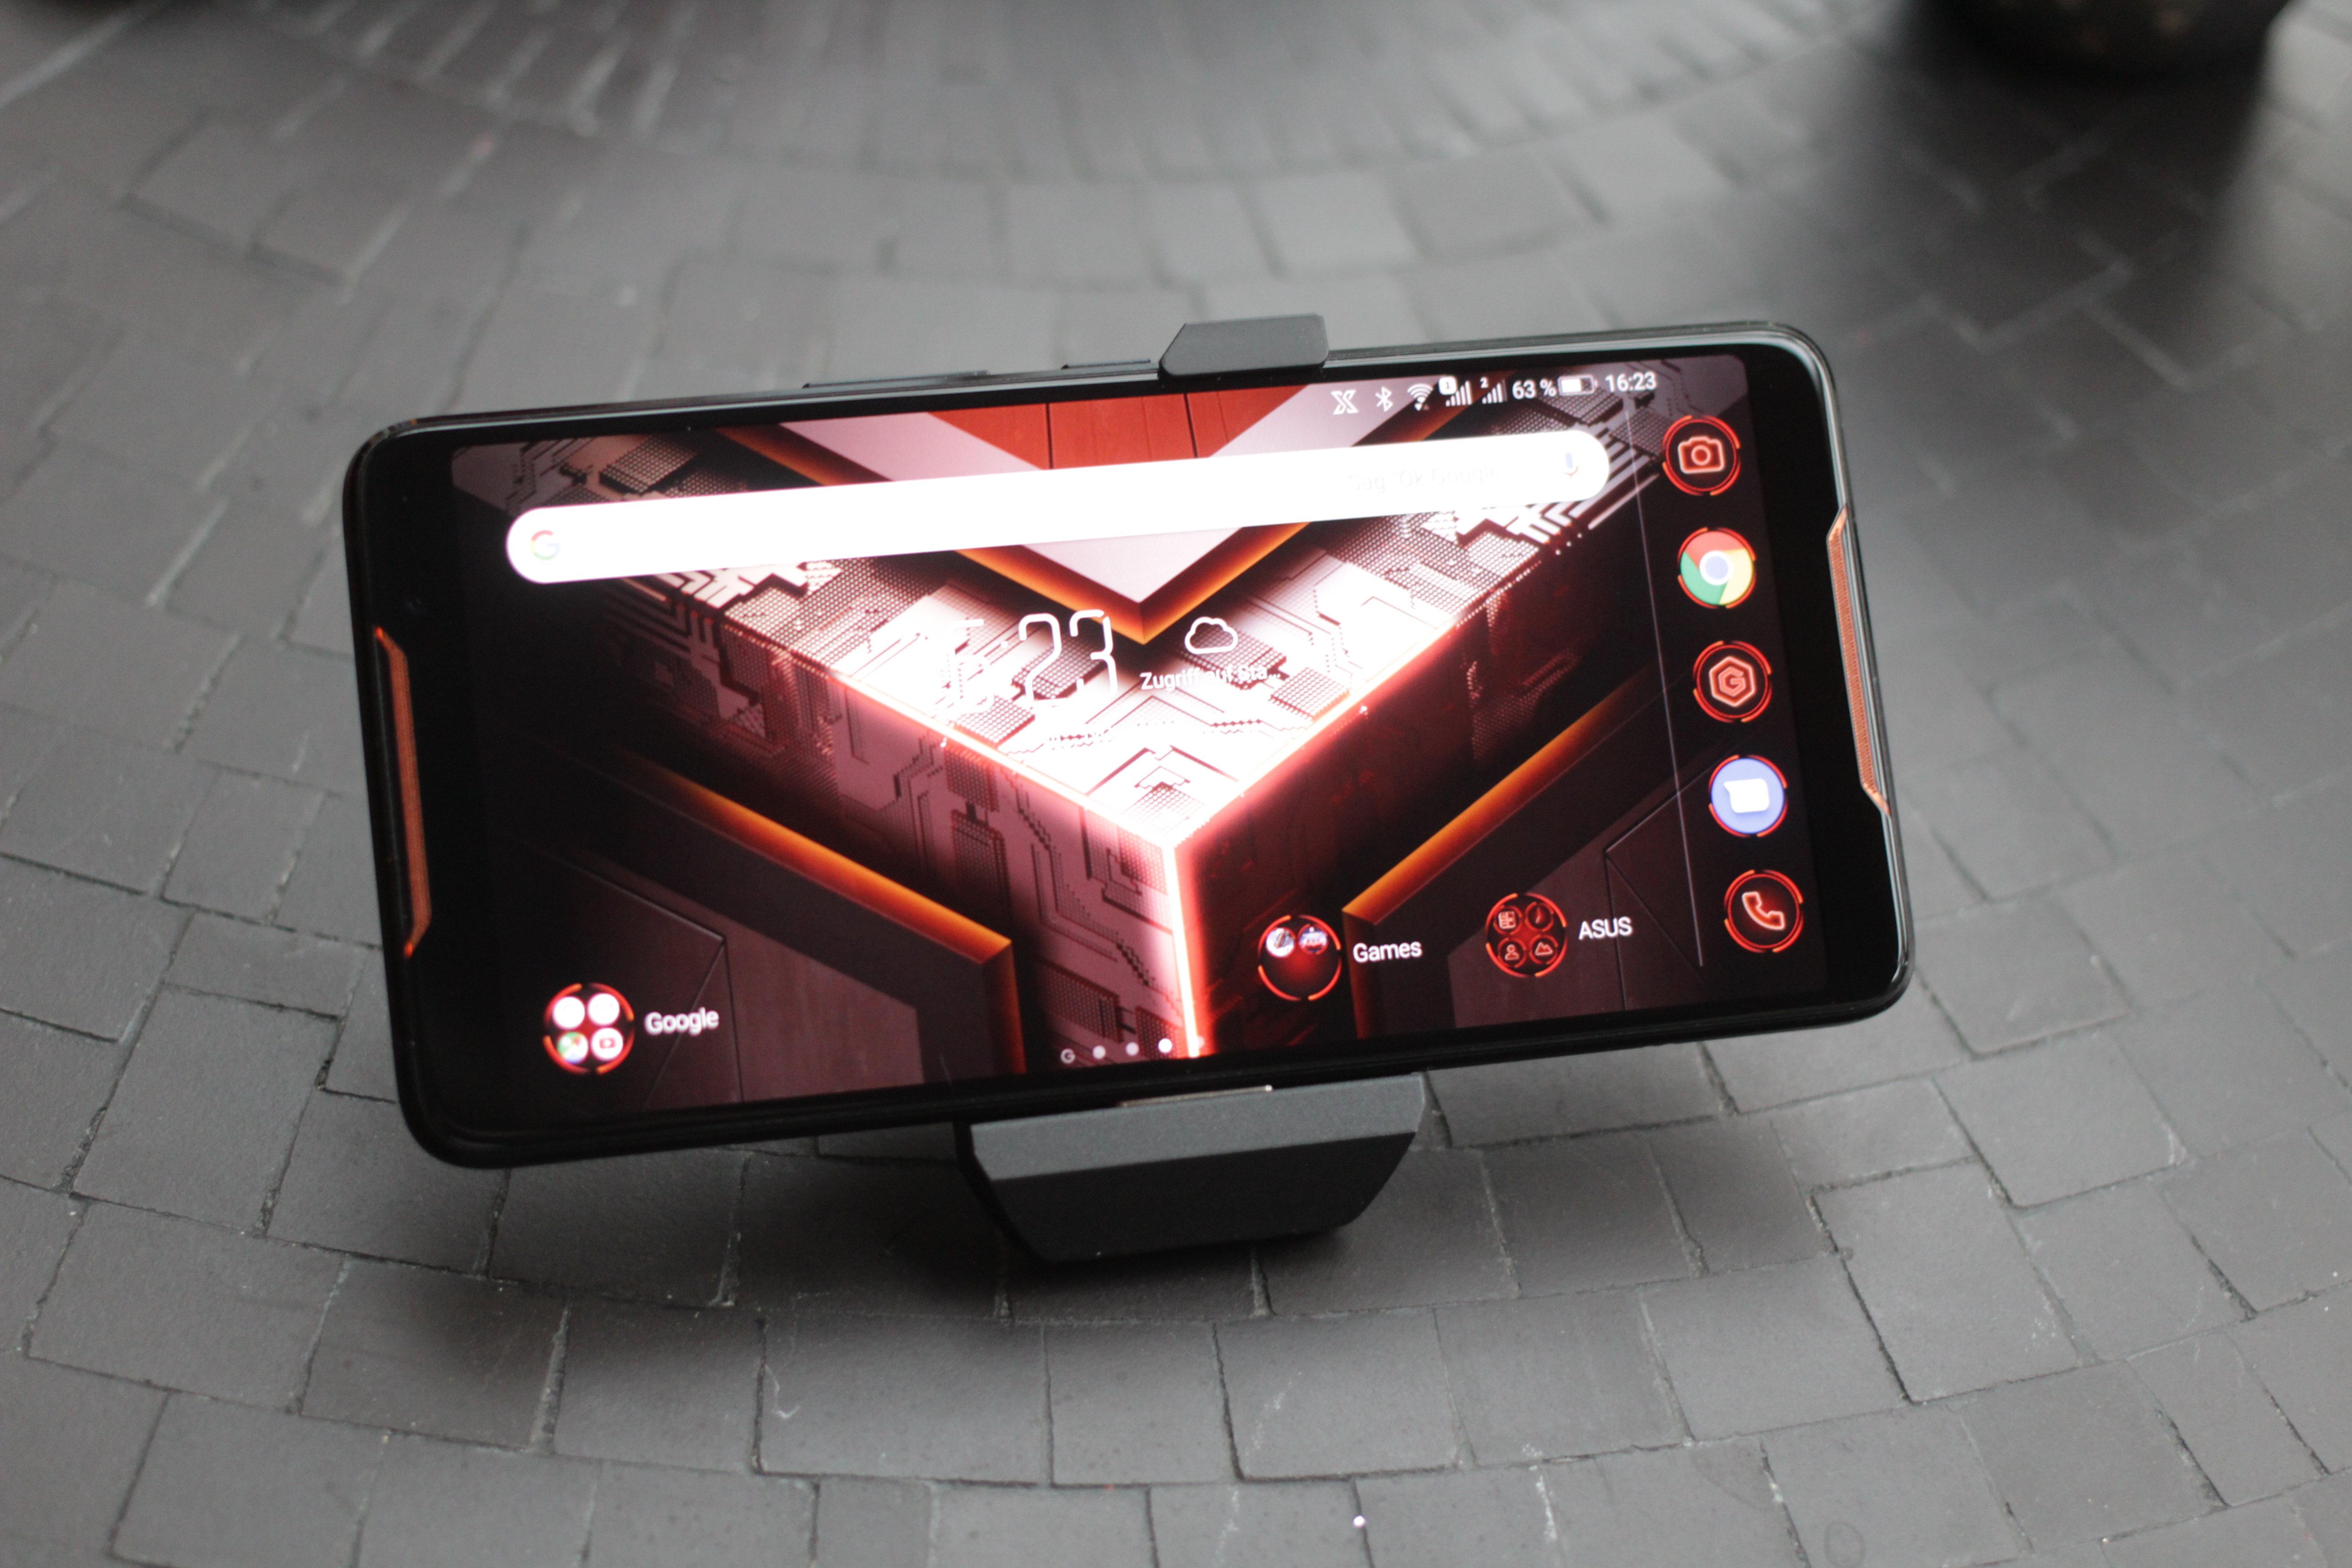 ASUS ROG Phone Smartphone Review - NotebookCheck net Reviews